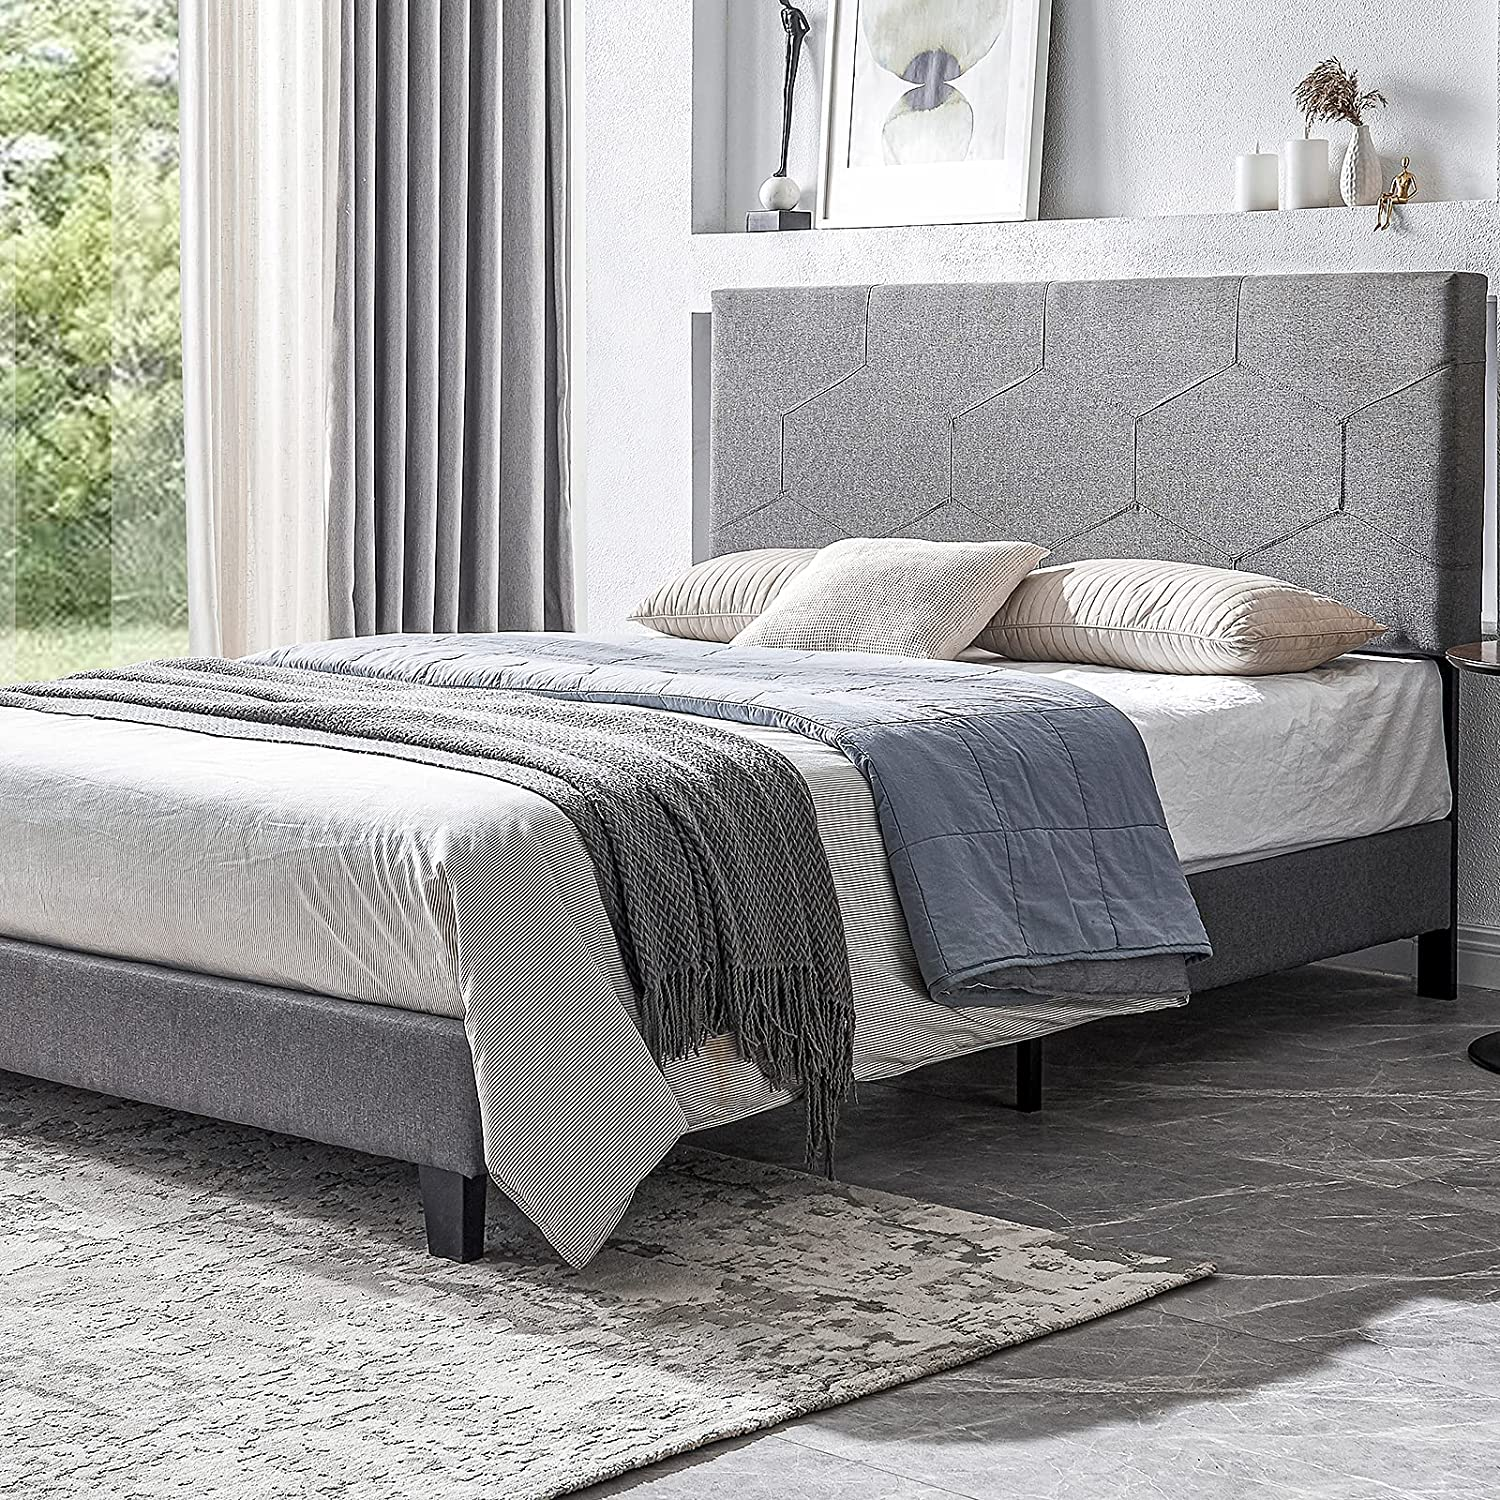 Smile Back Upholstered Queen Bed Size Style Frame 買い取り Favose 全国どこでも送料無料